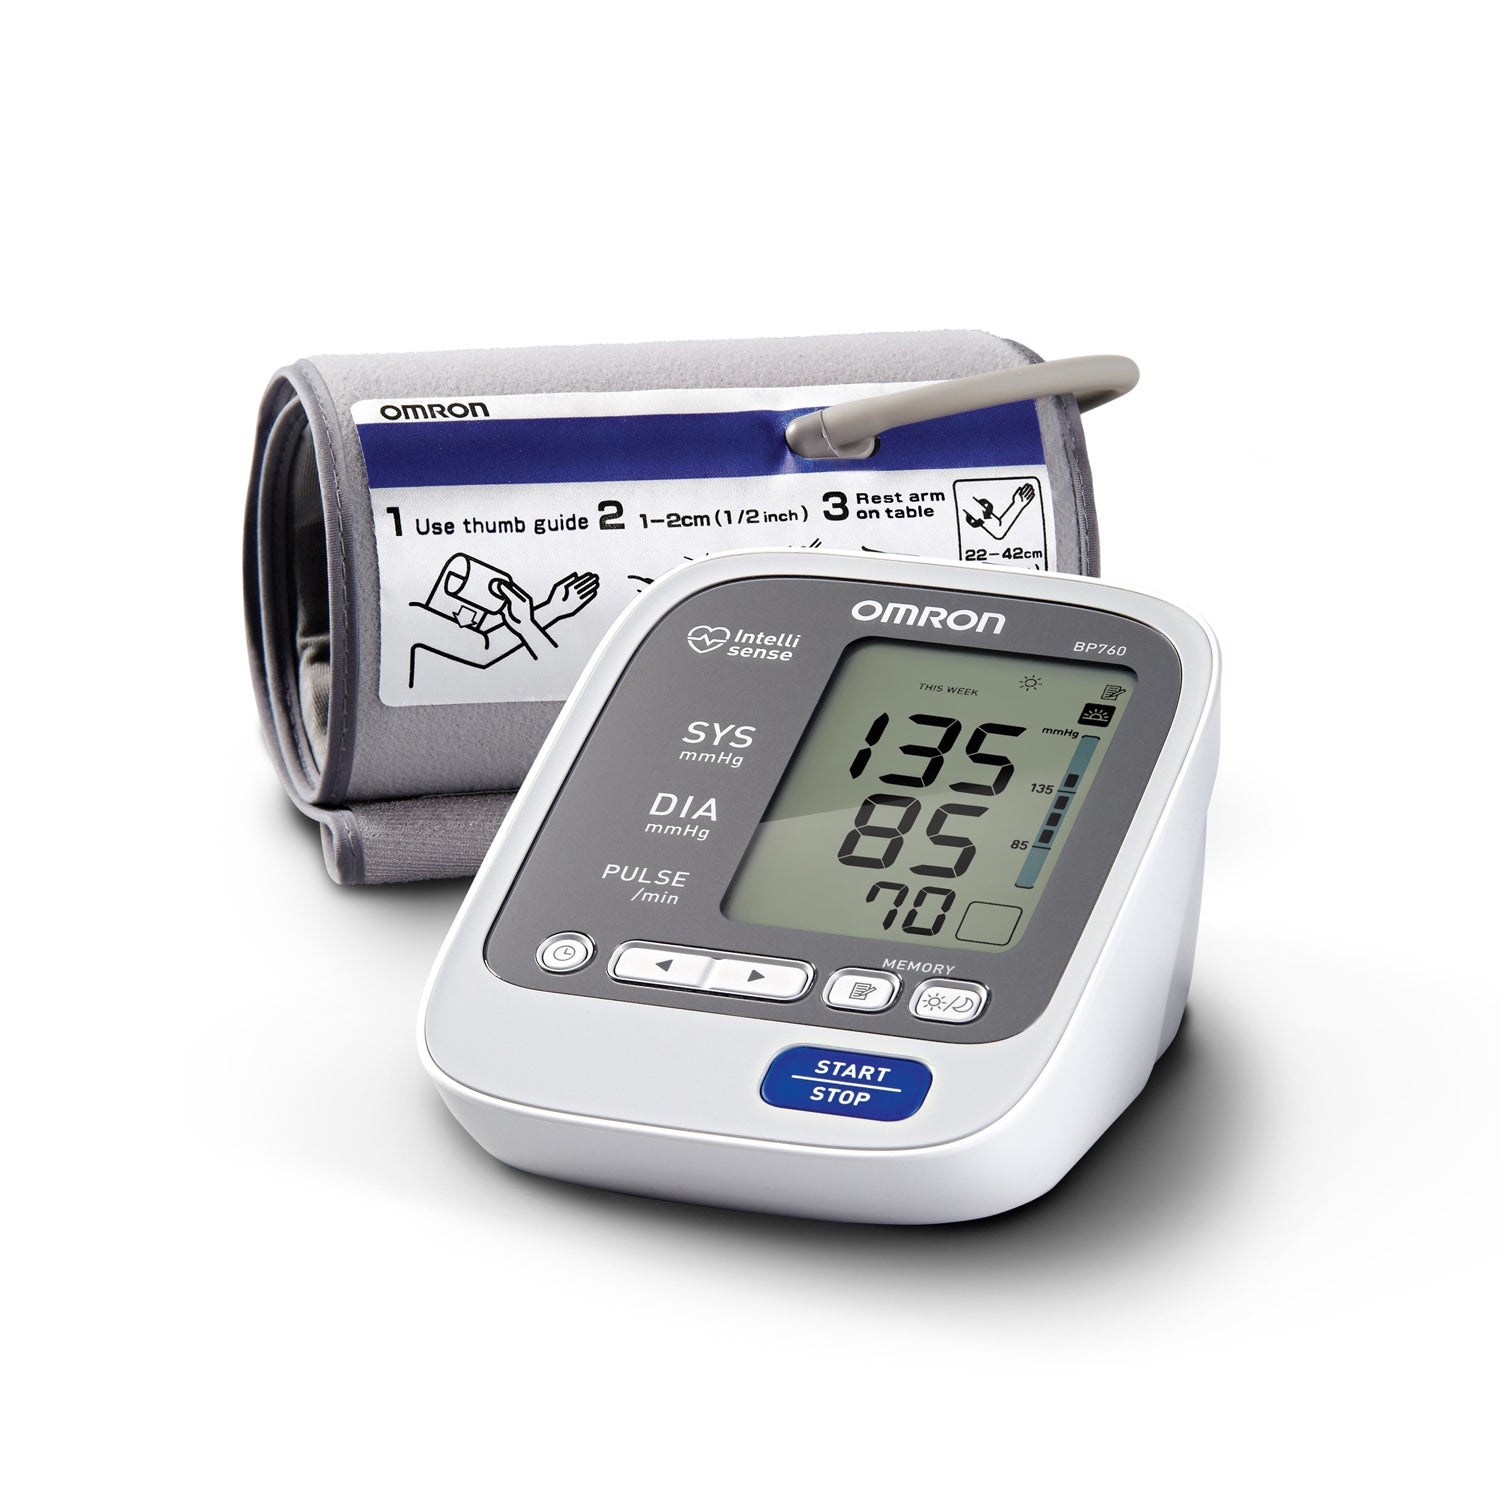 OMRON 7-Series Upper Arm Blood Pressure Monitor with Cuff...